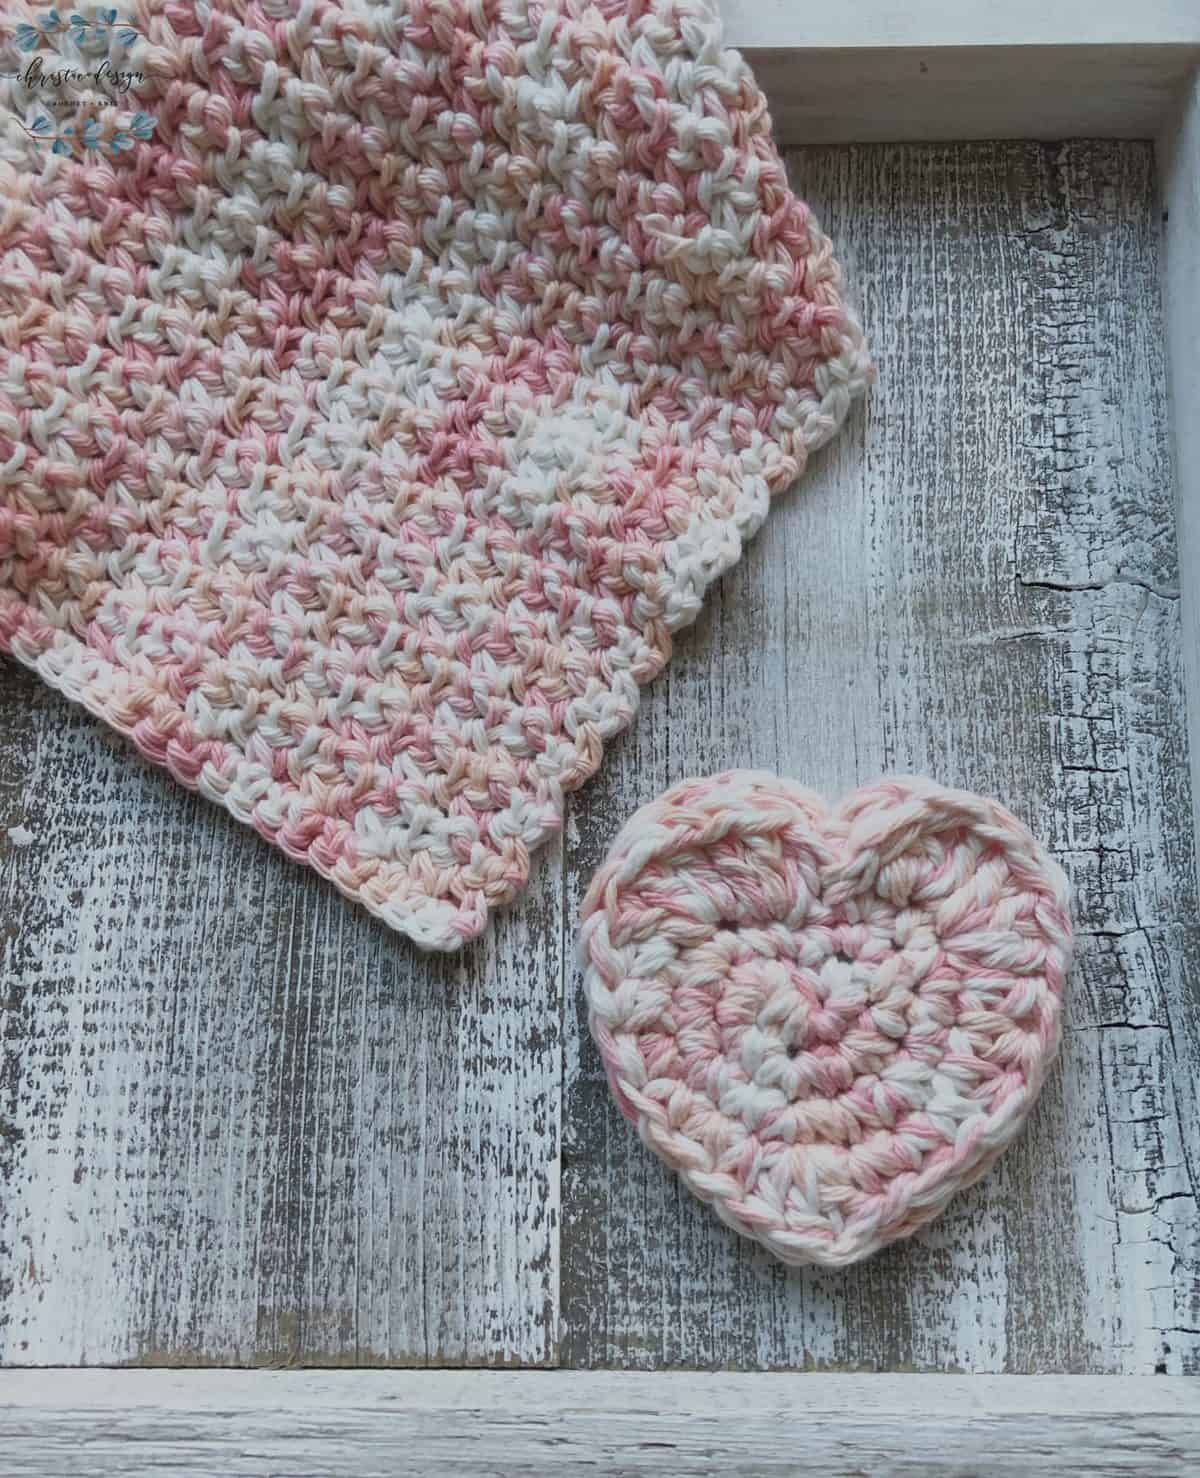 Picture of Crochet Heart and washcloth